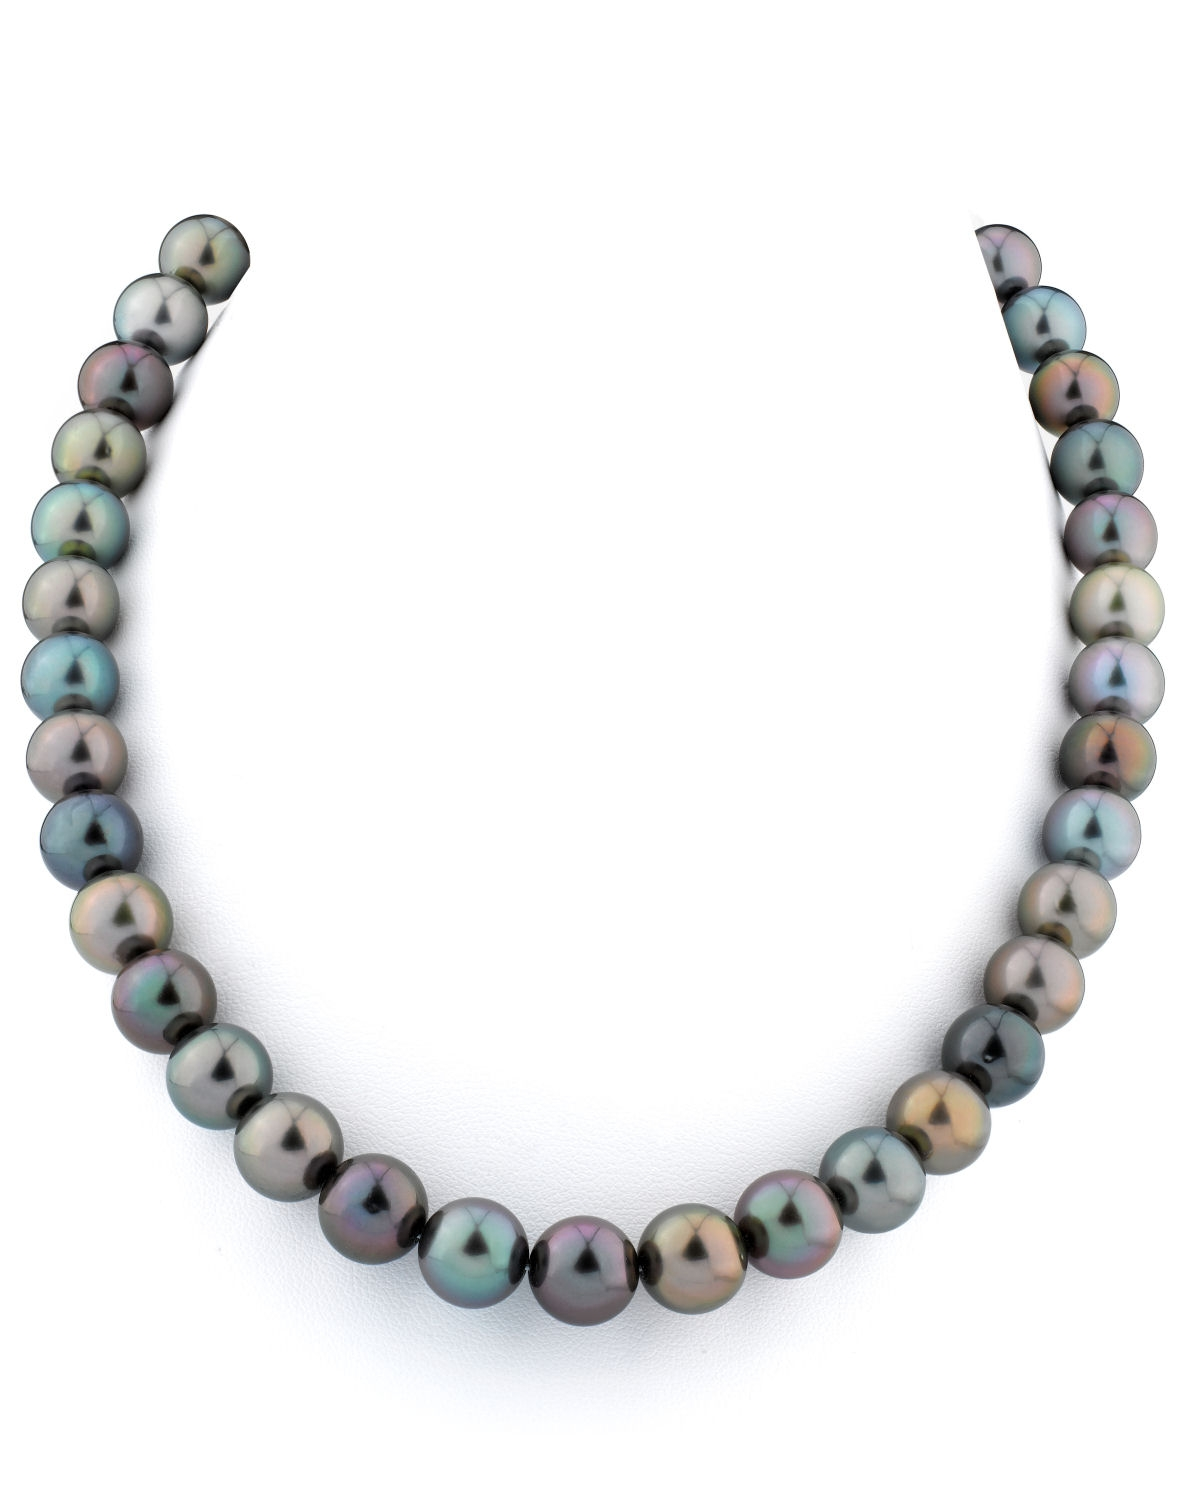 10 11mm tahitian south sea multicolor pearl necklace